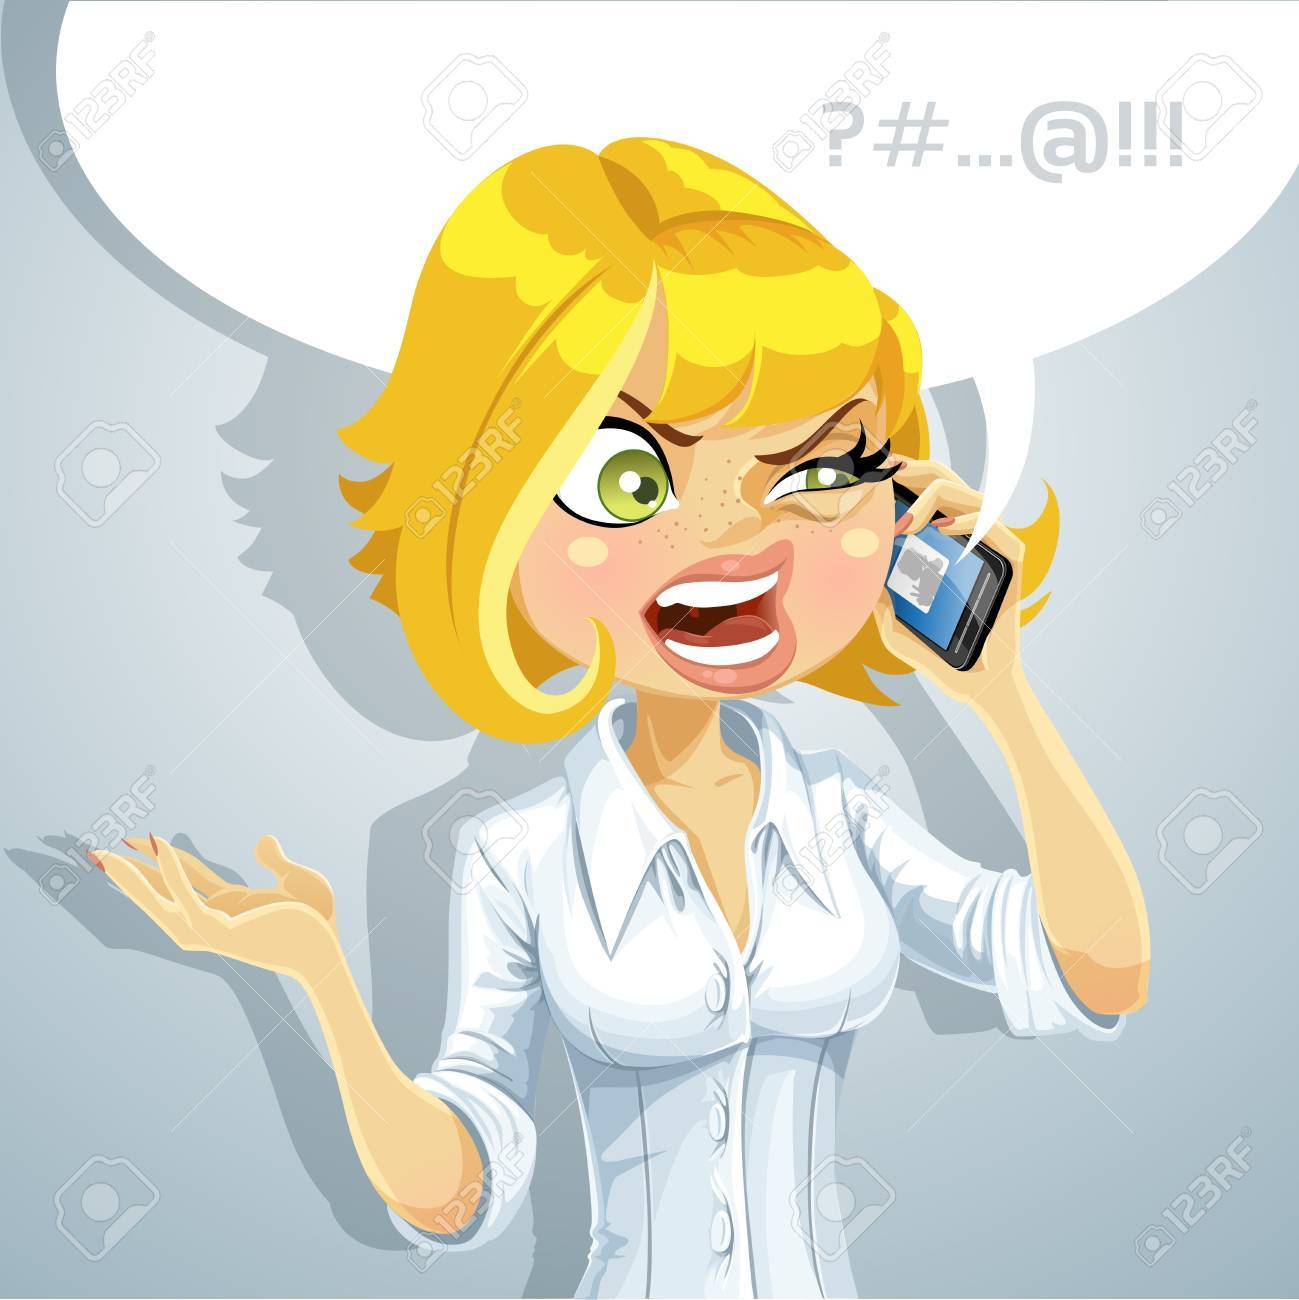 Cute blond girl talking on the phone about something unpleasant Stock Vector - 16030455